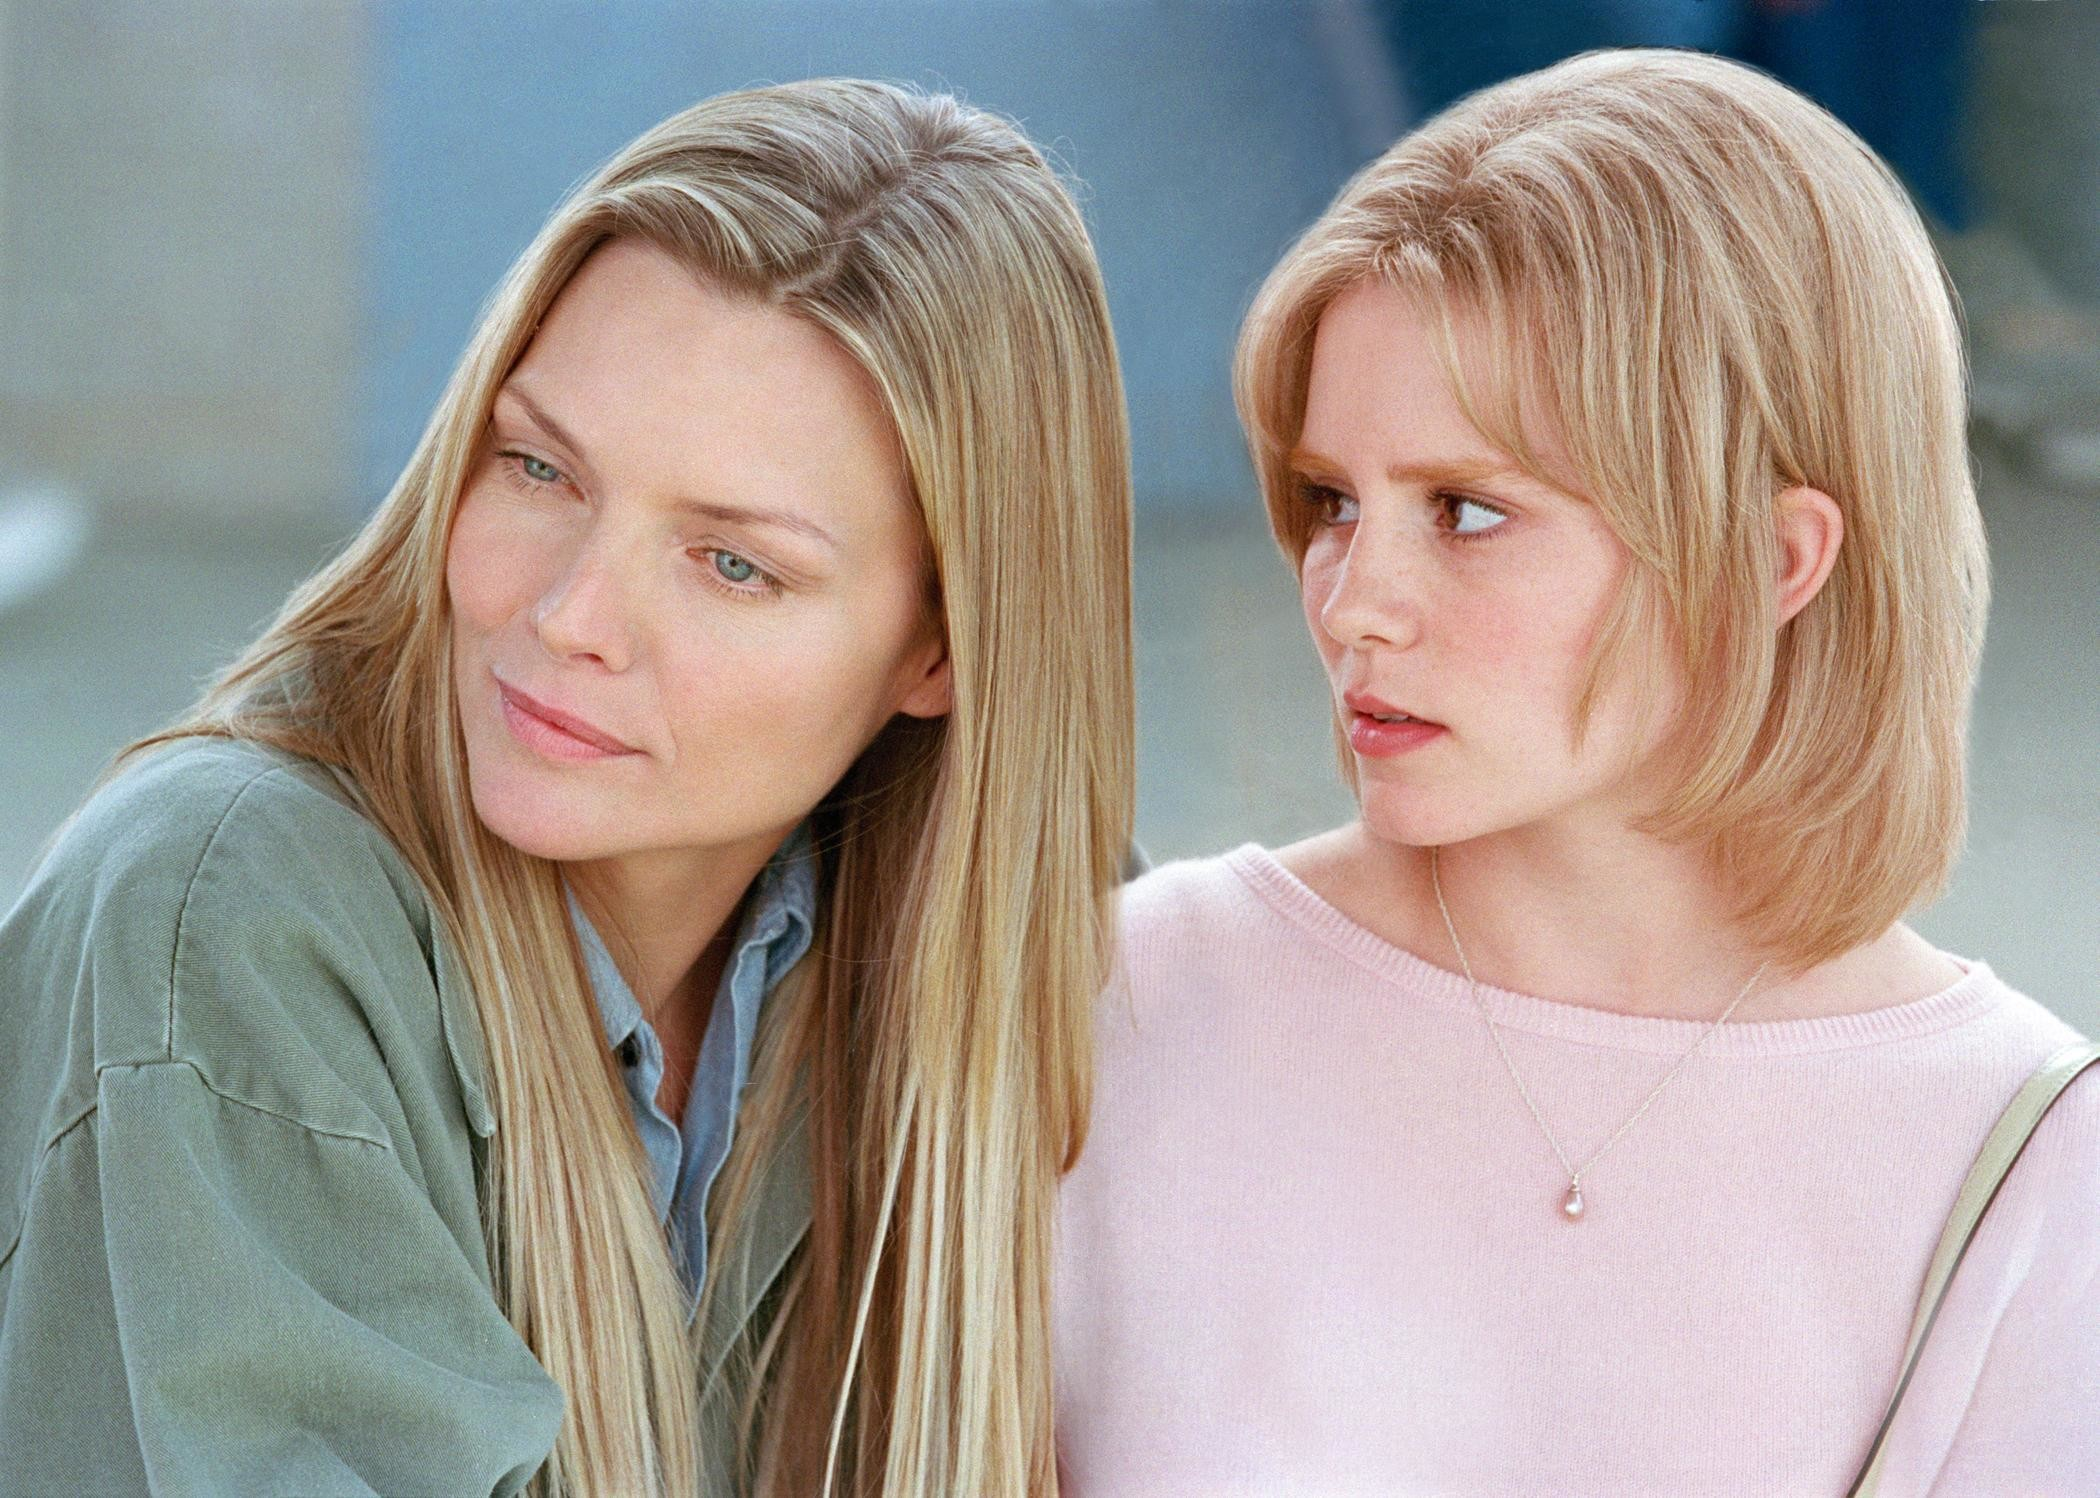 Res: 2100x1498, White Oleander images Ingrid & Astrid HD wallpaper and background photos